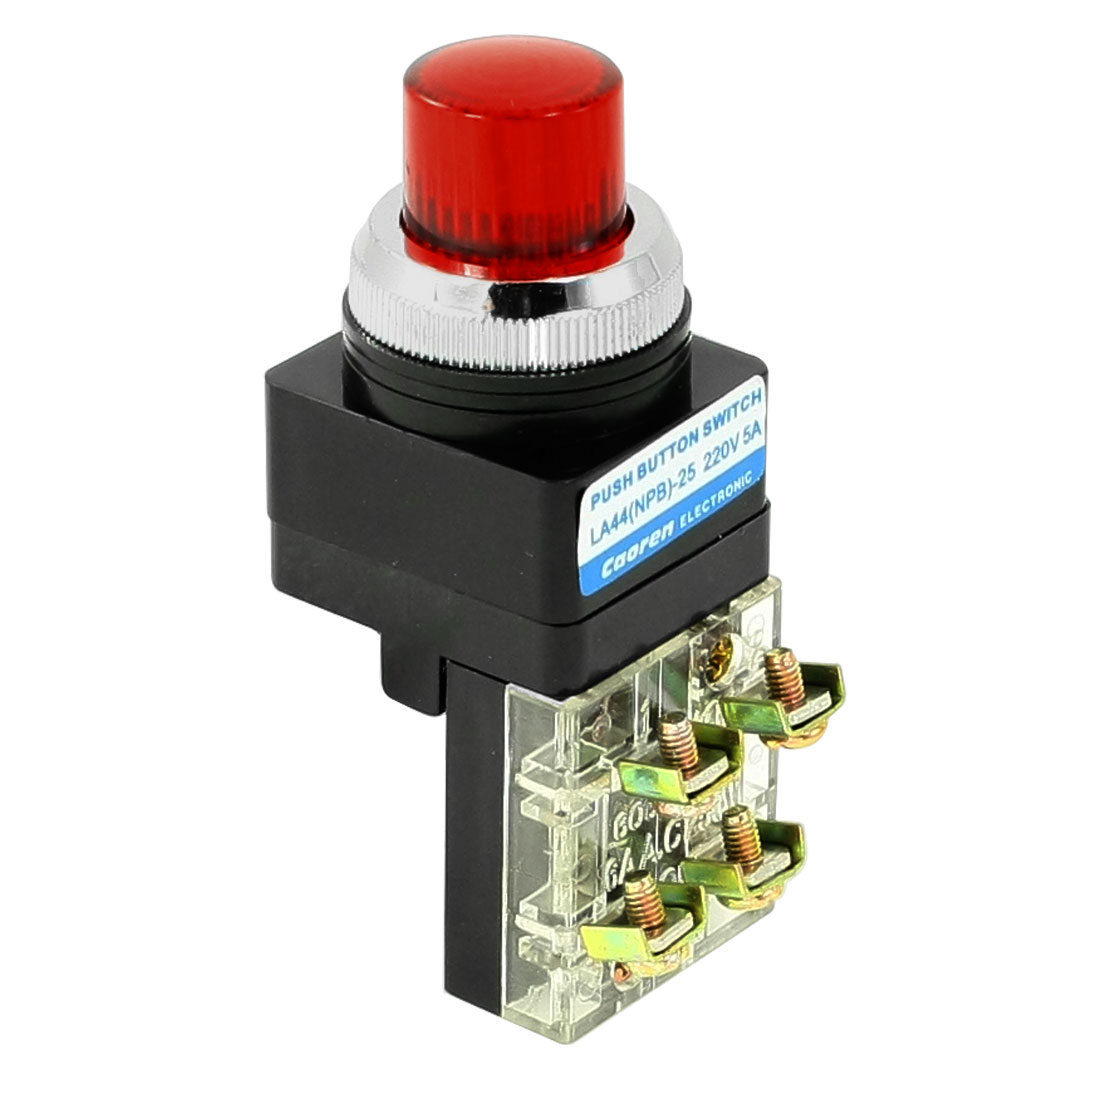 AC 250V 6A 1NO 1NC DPST Red Momentary Push Button Switch w AC 240V LED Light